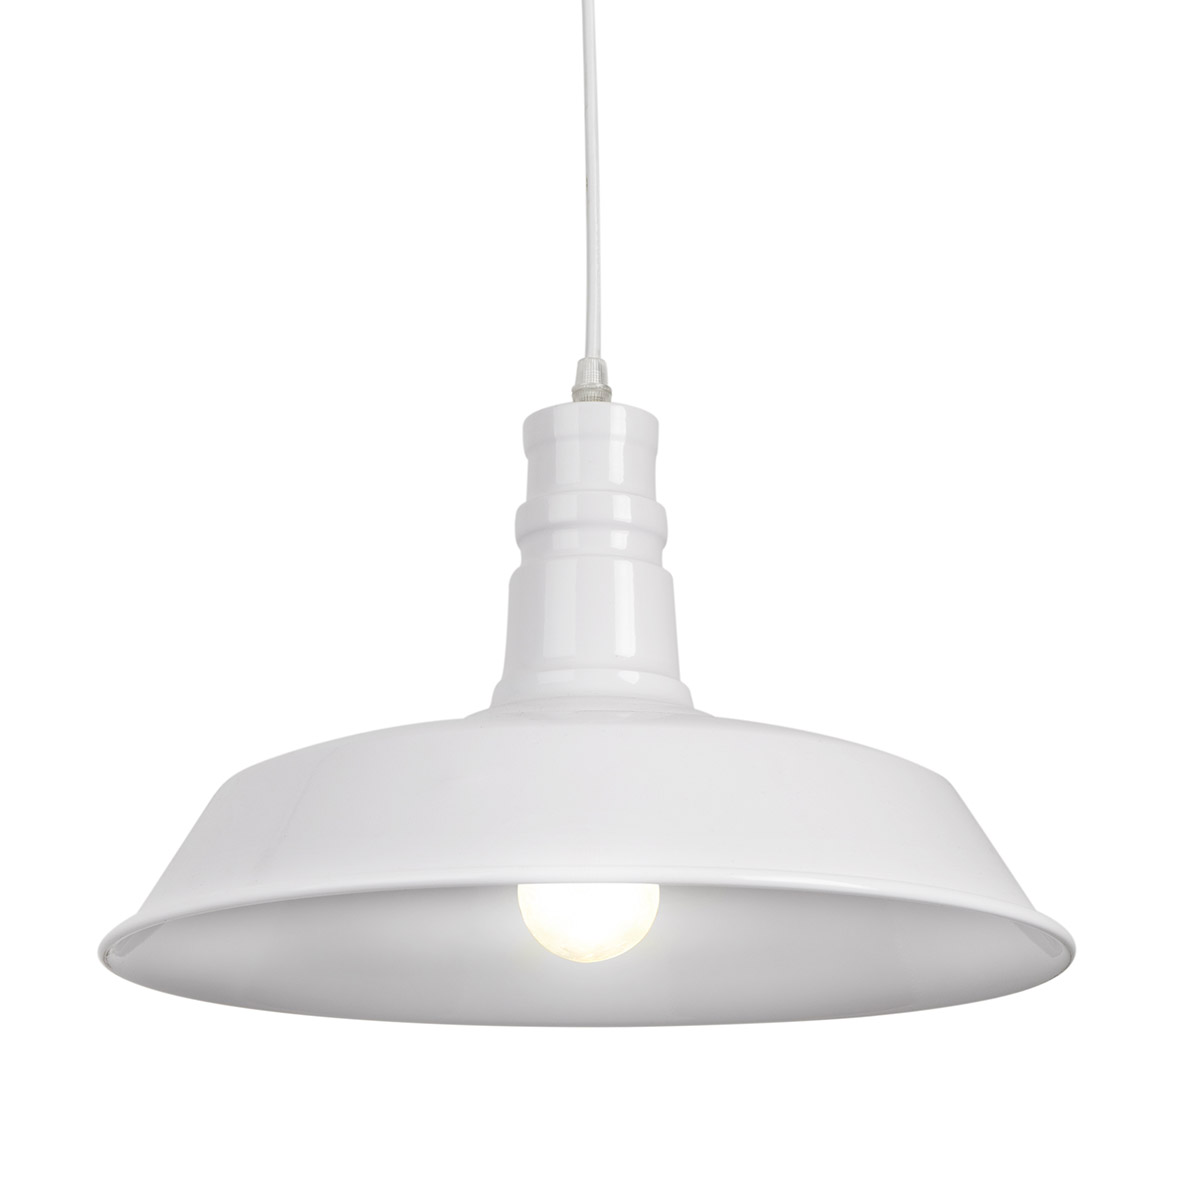 Ceiling lamp Factory metal, color White, industrial style, 30x35x35 cm